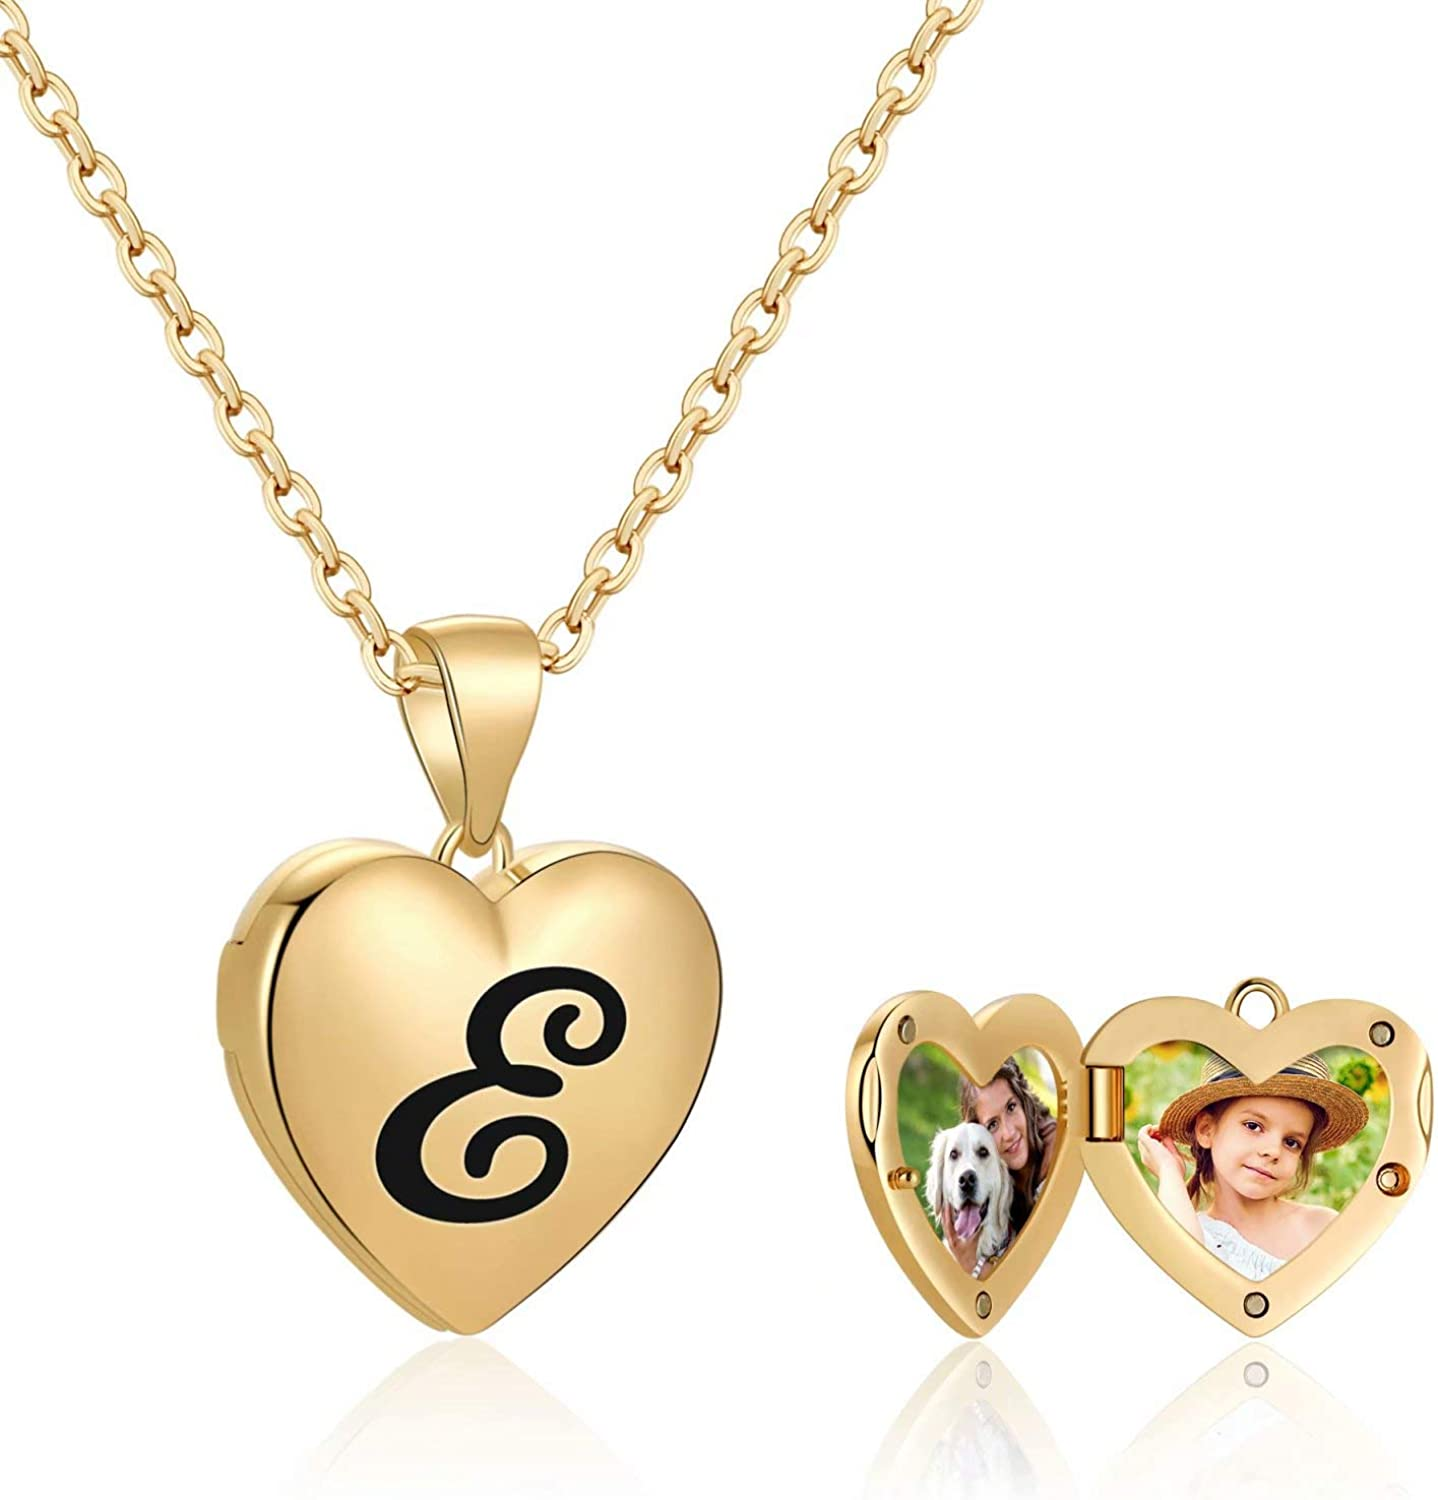 IEFWELL Locket Necklaces That Holds Pictures, 14K Gold Plated Heart Picture Necklaces for Women Girls Initial Locket Necklaces for Kids Teen Girls